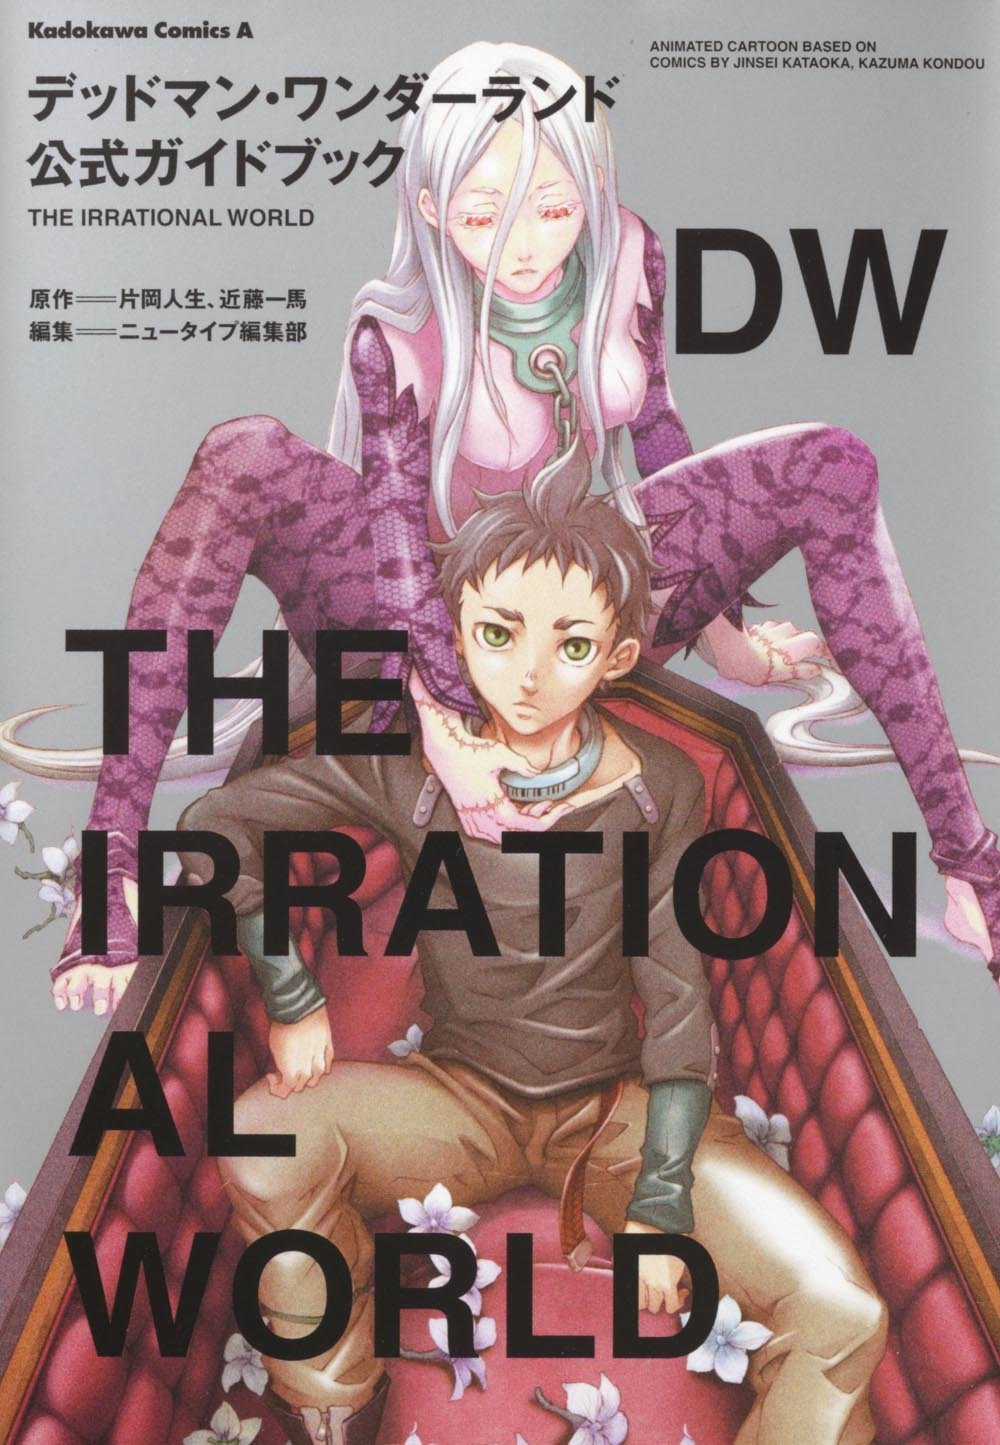 Actu Manga, Another Deadman Wonderland, Deadman Wonderland, Kana, Manga, The Irrational World,